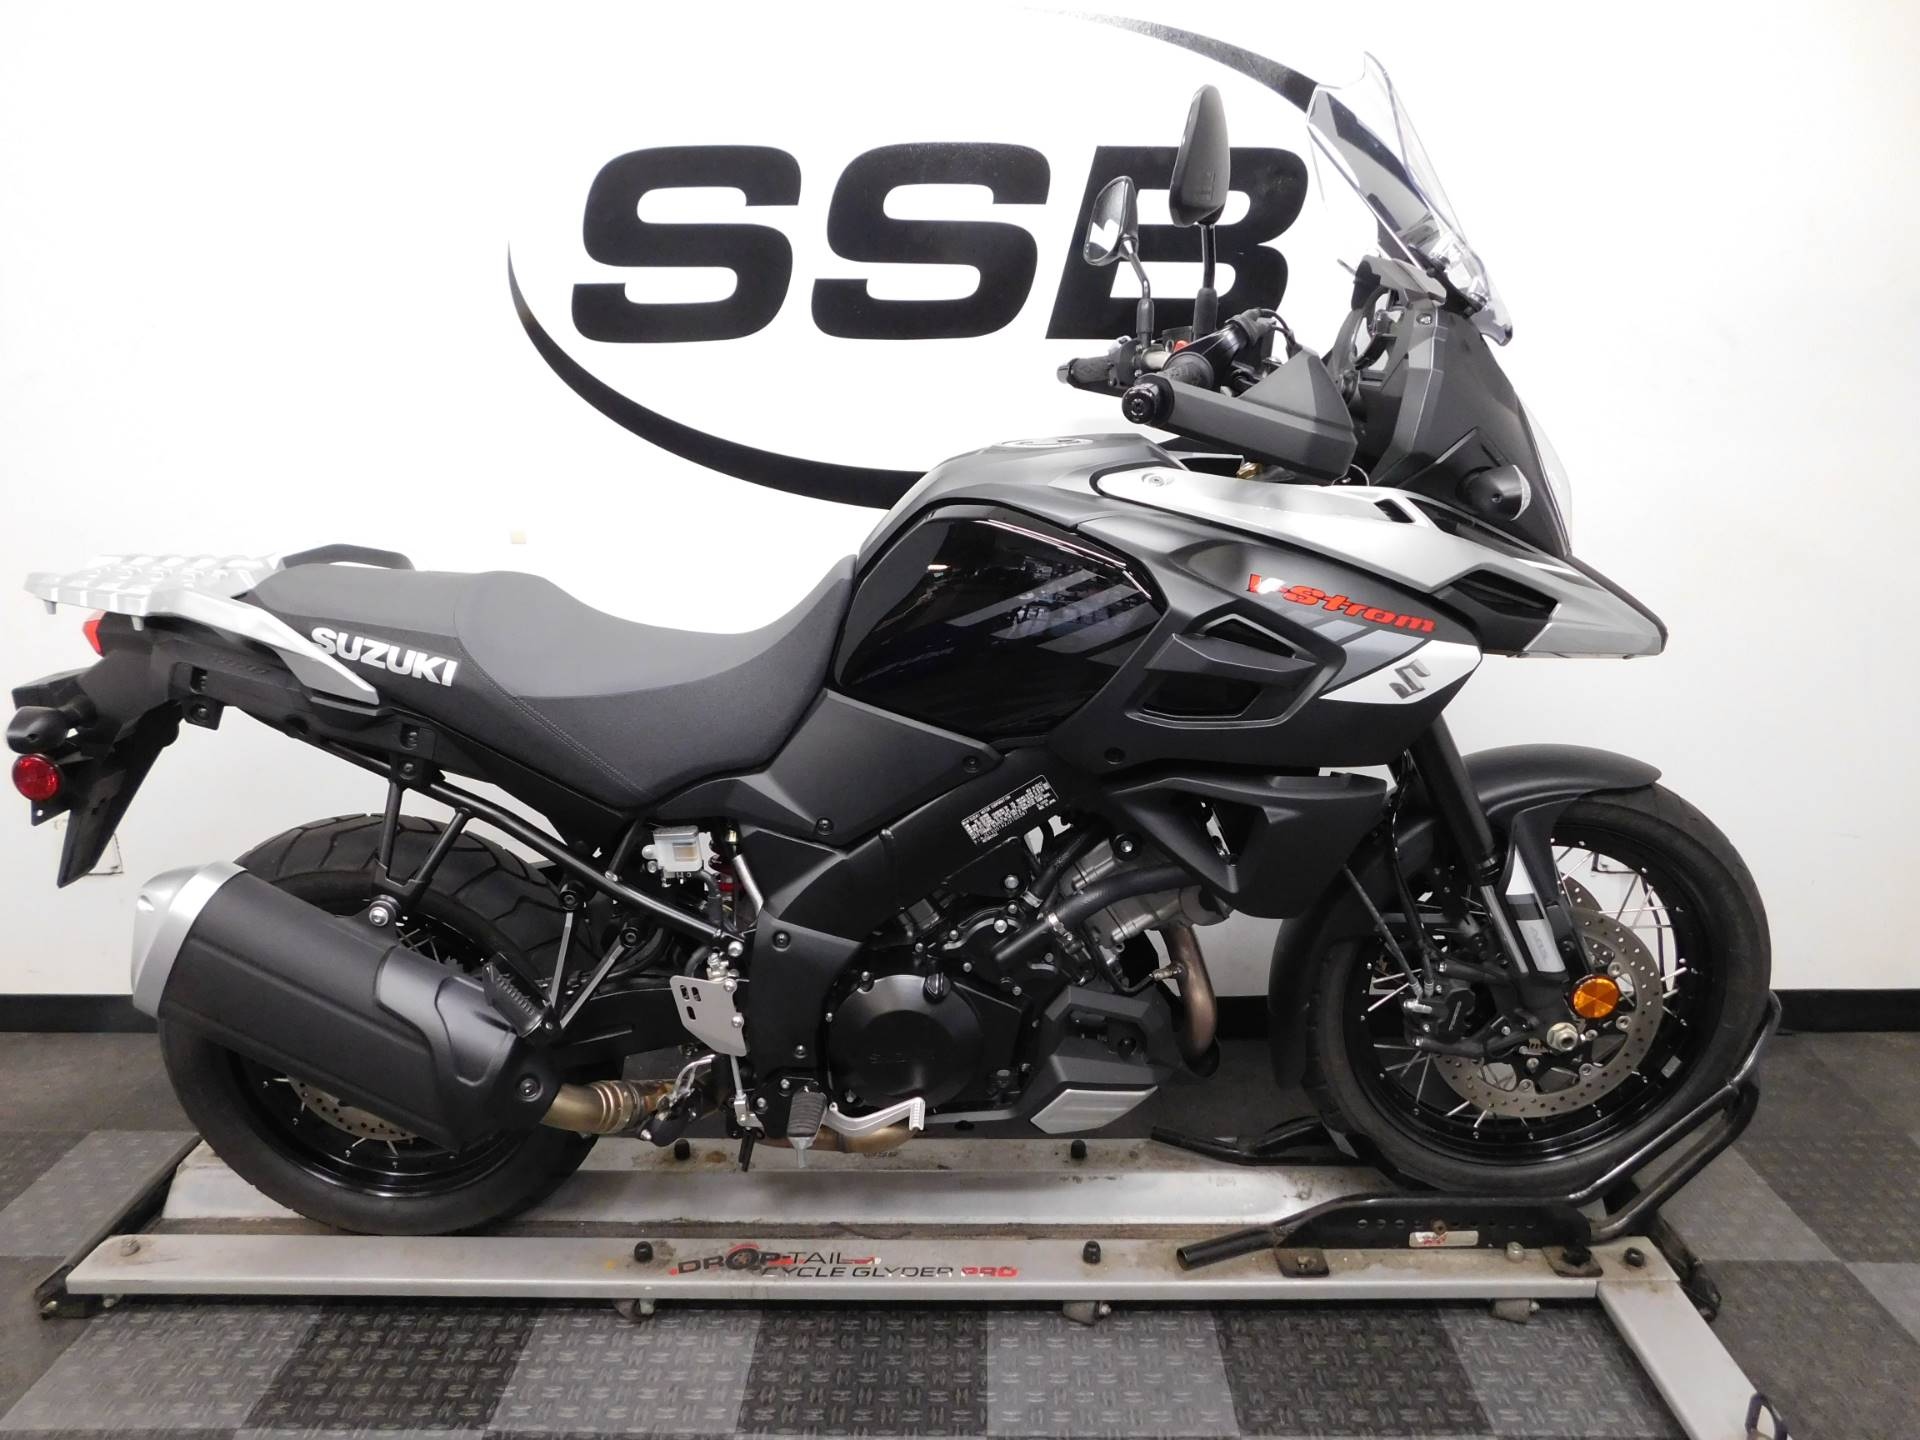 2018 Suzuki V-Strom 1000XT for sale 51271